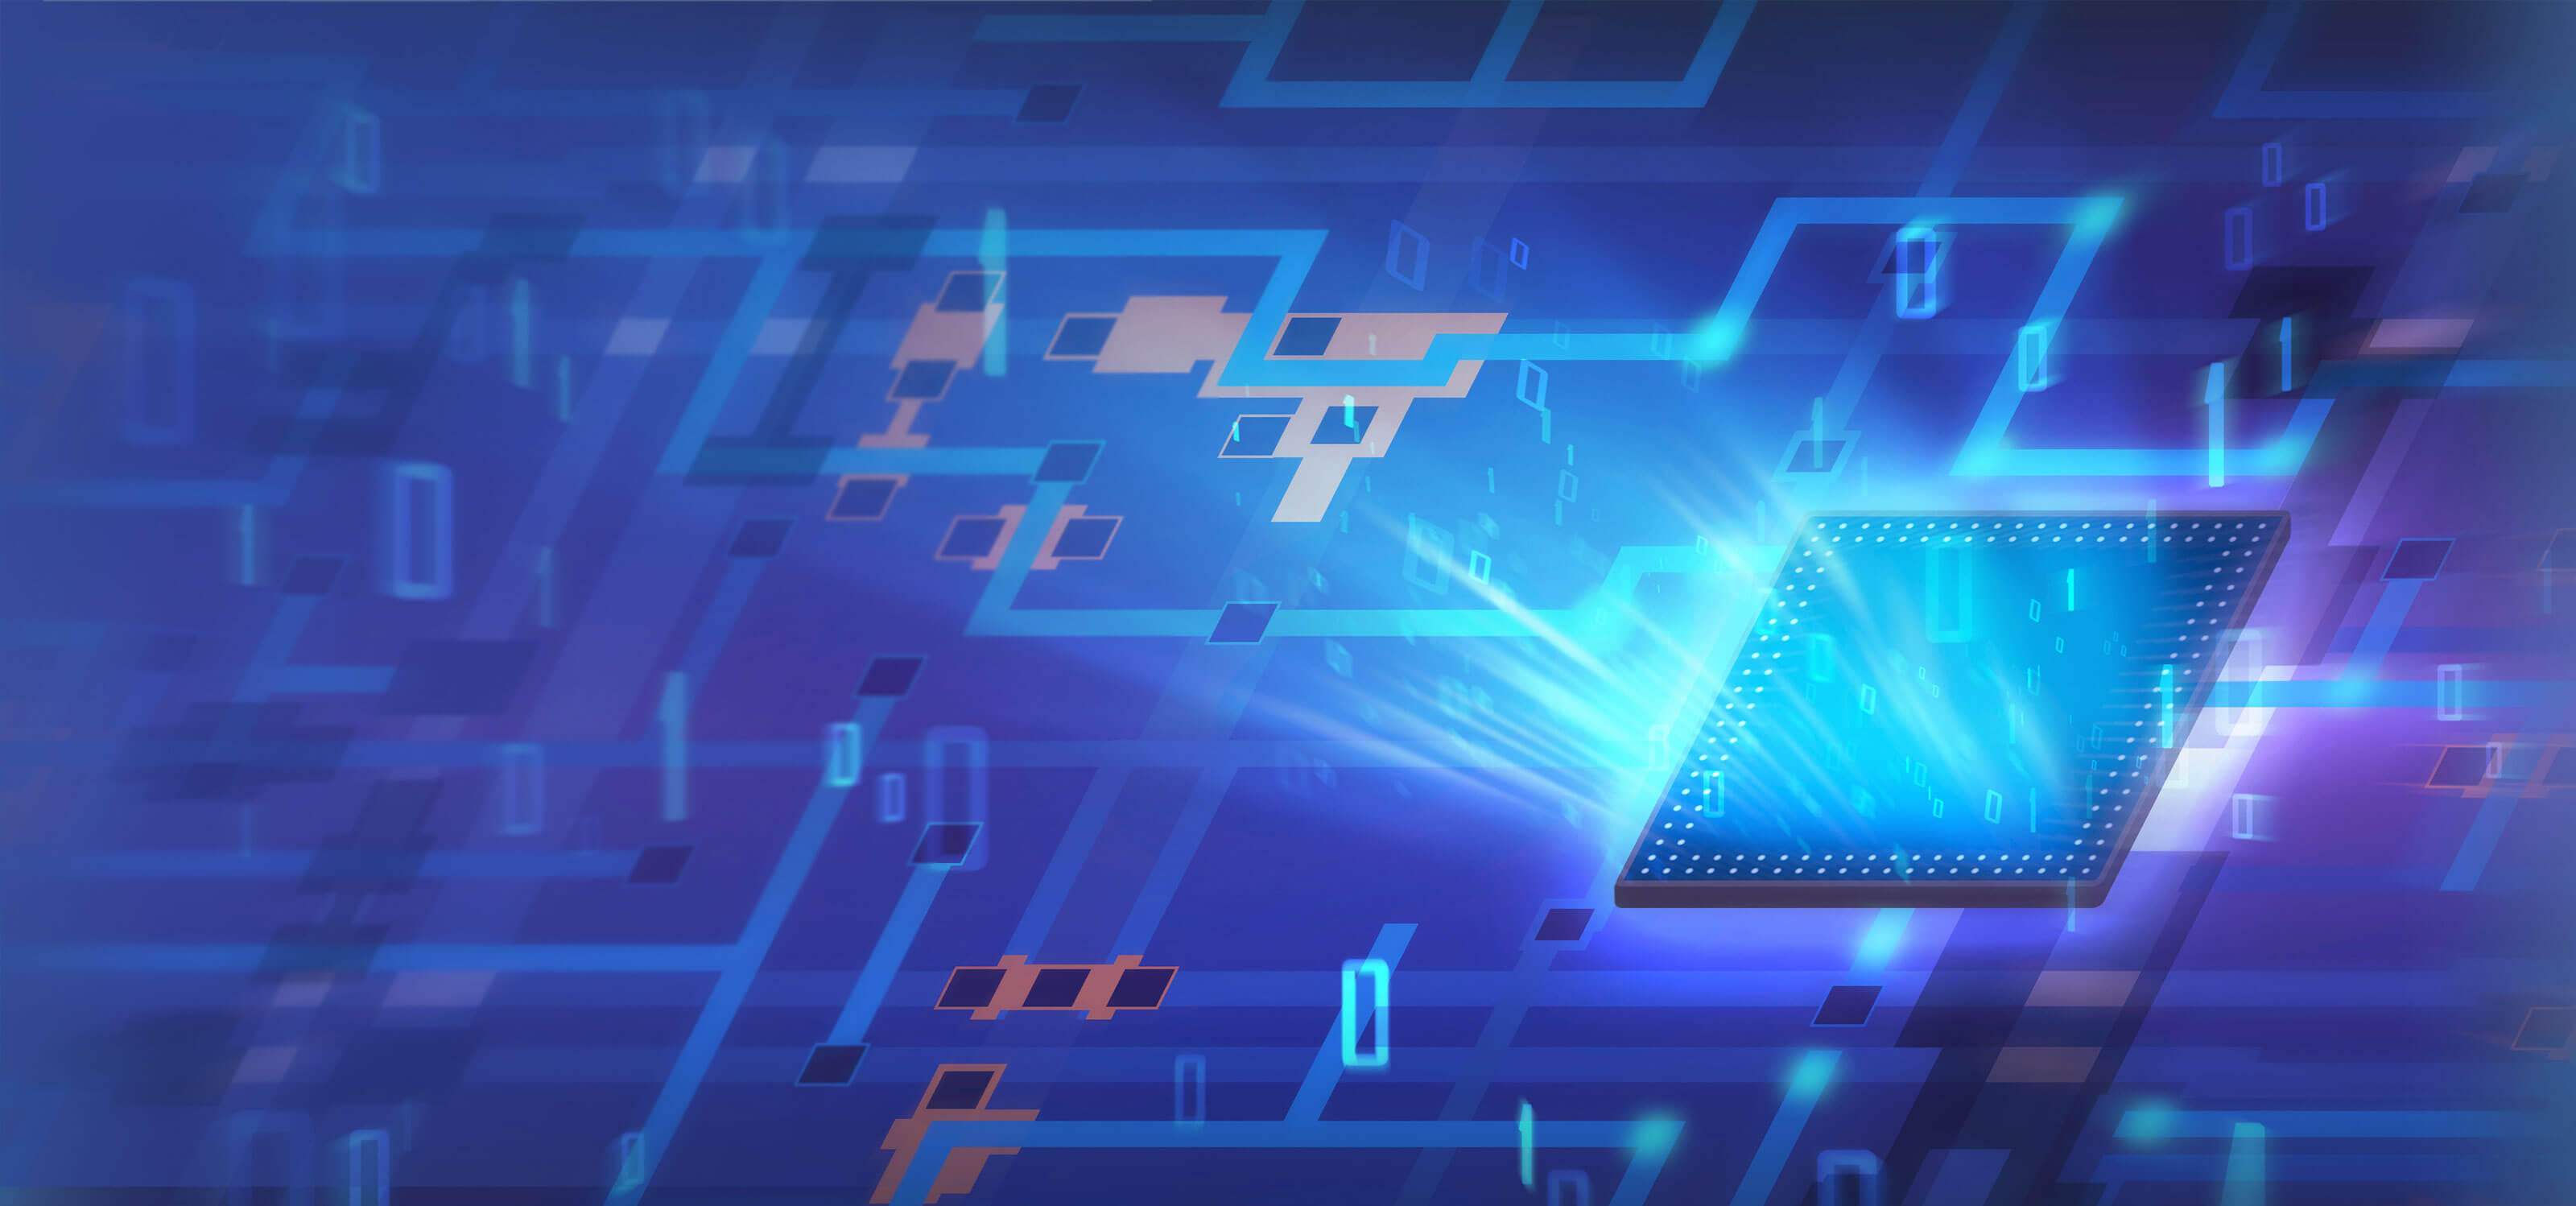 Embedded Software Engineer >> Attach And Train Ant Program For Embedded Software Developer